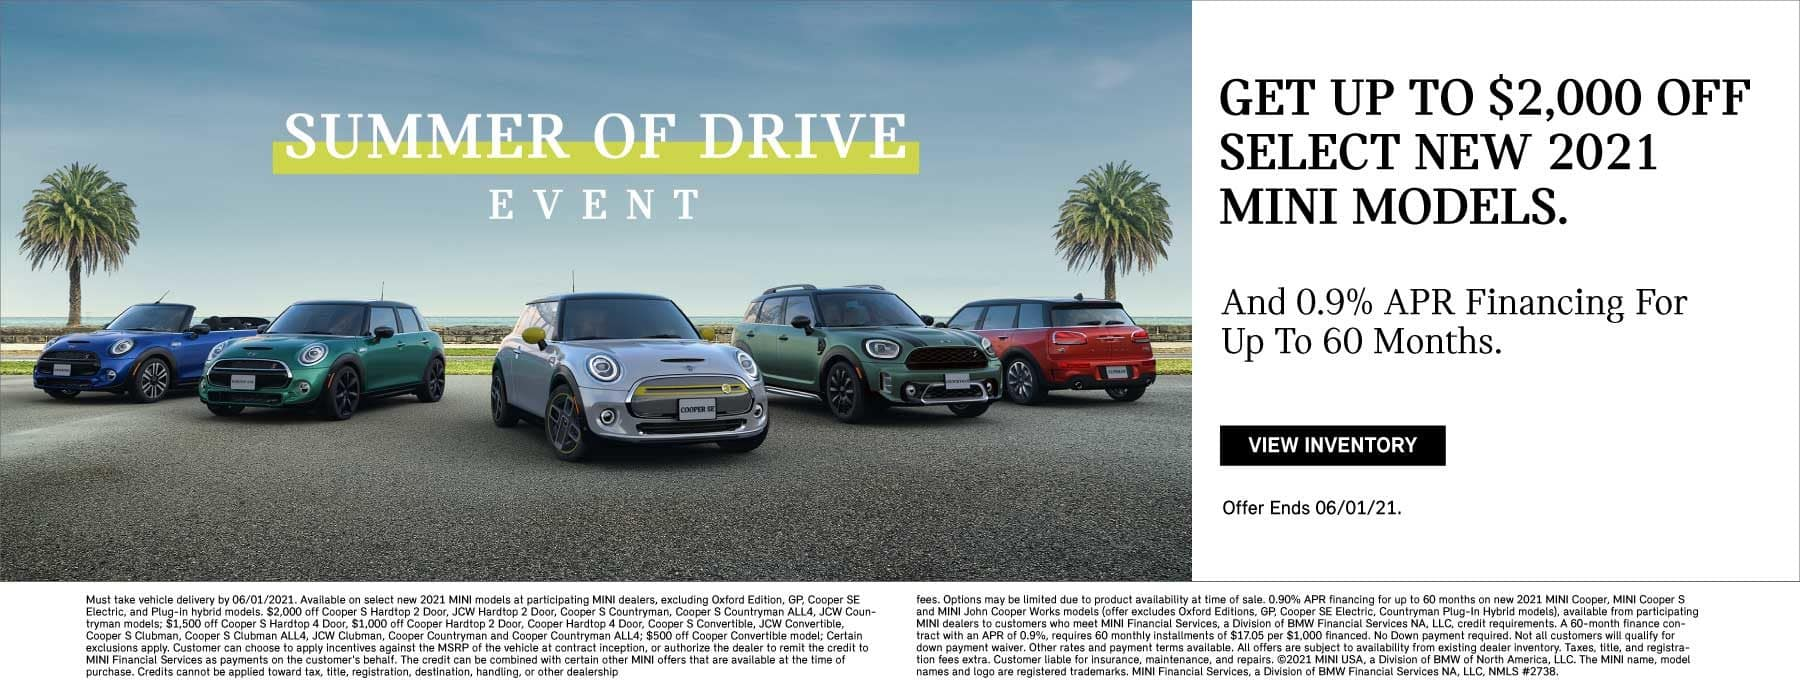 Get up to $2,000 select 2021 MINI models